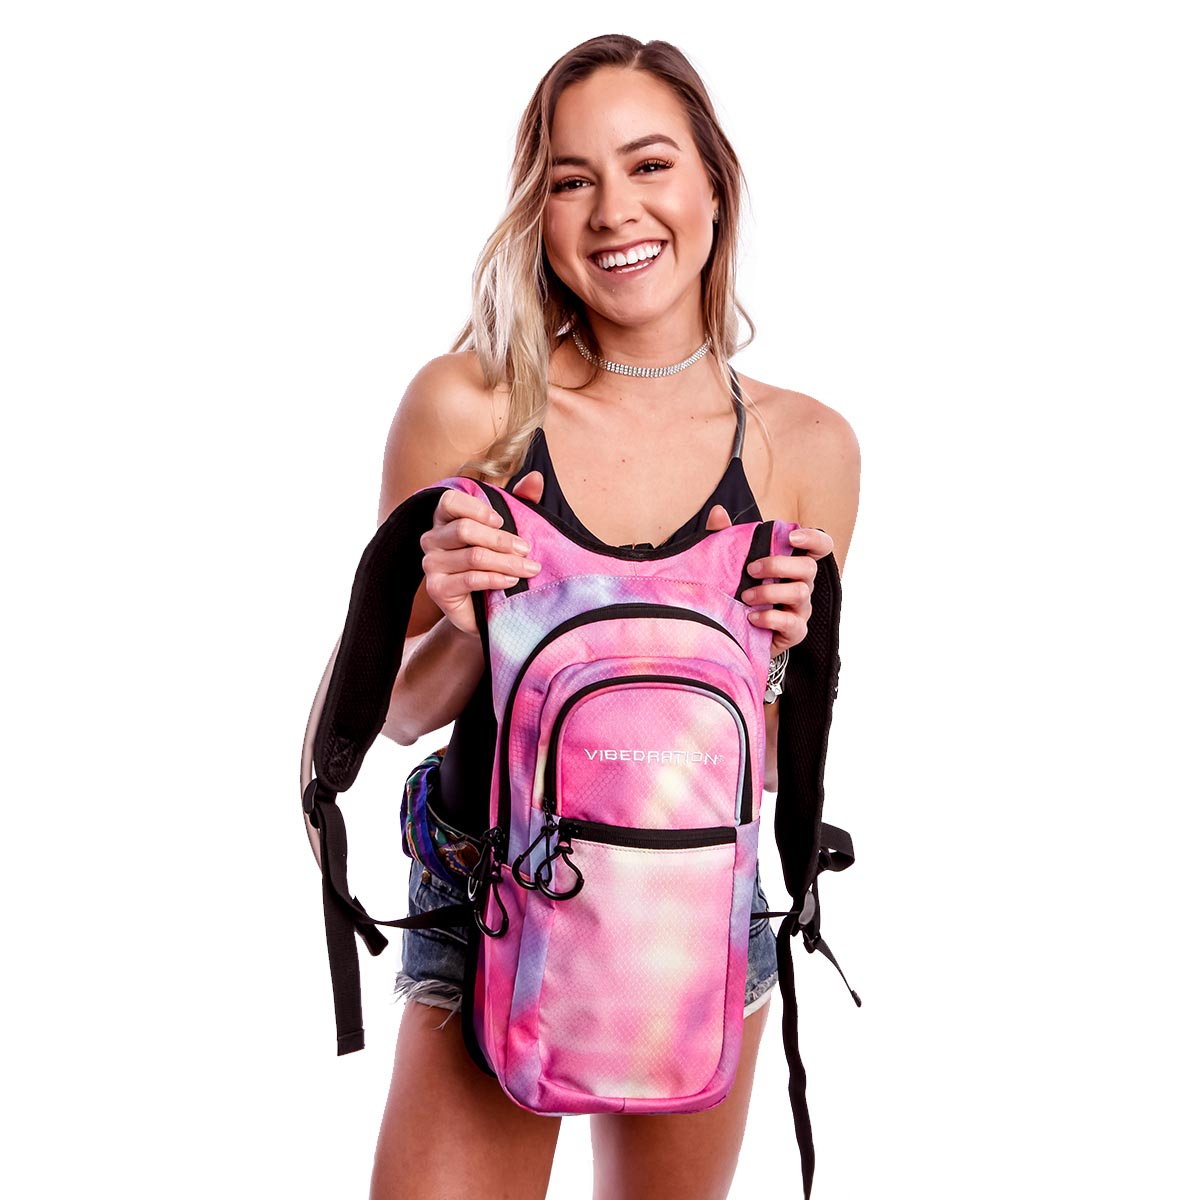 Female holding Tie-Dye Pink hydration pack with three pockets.